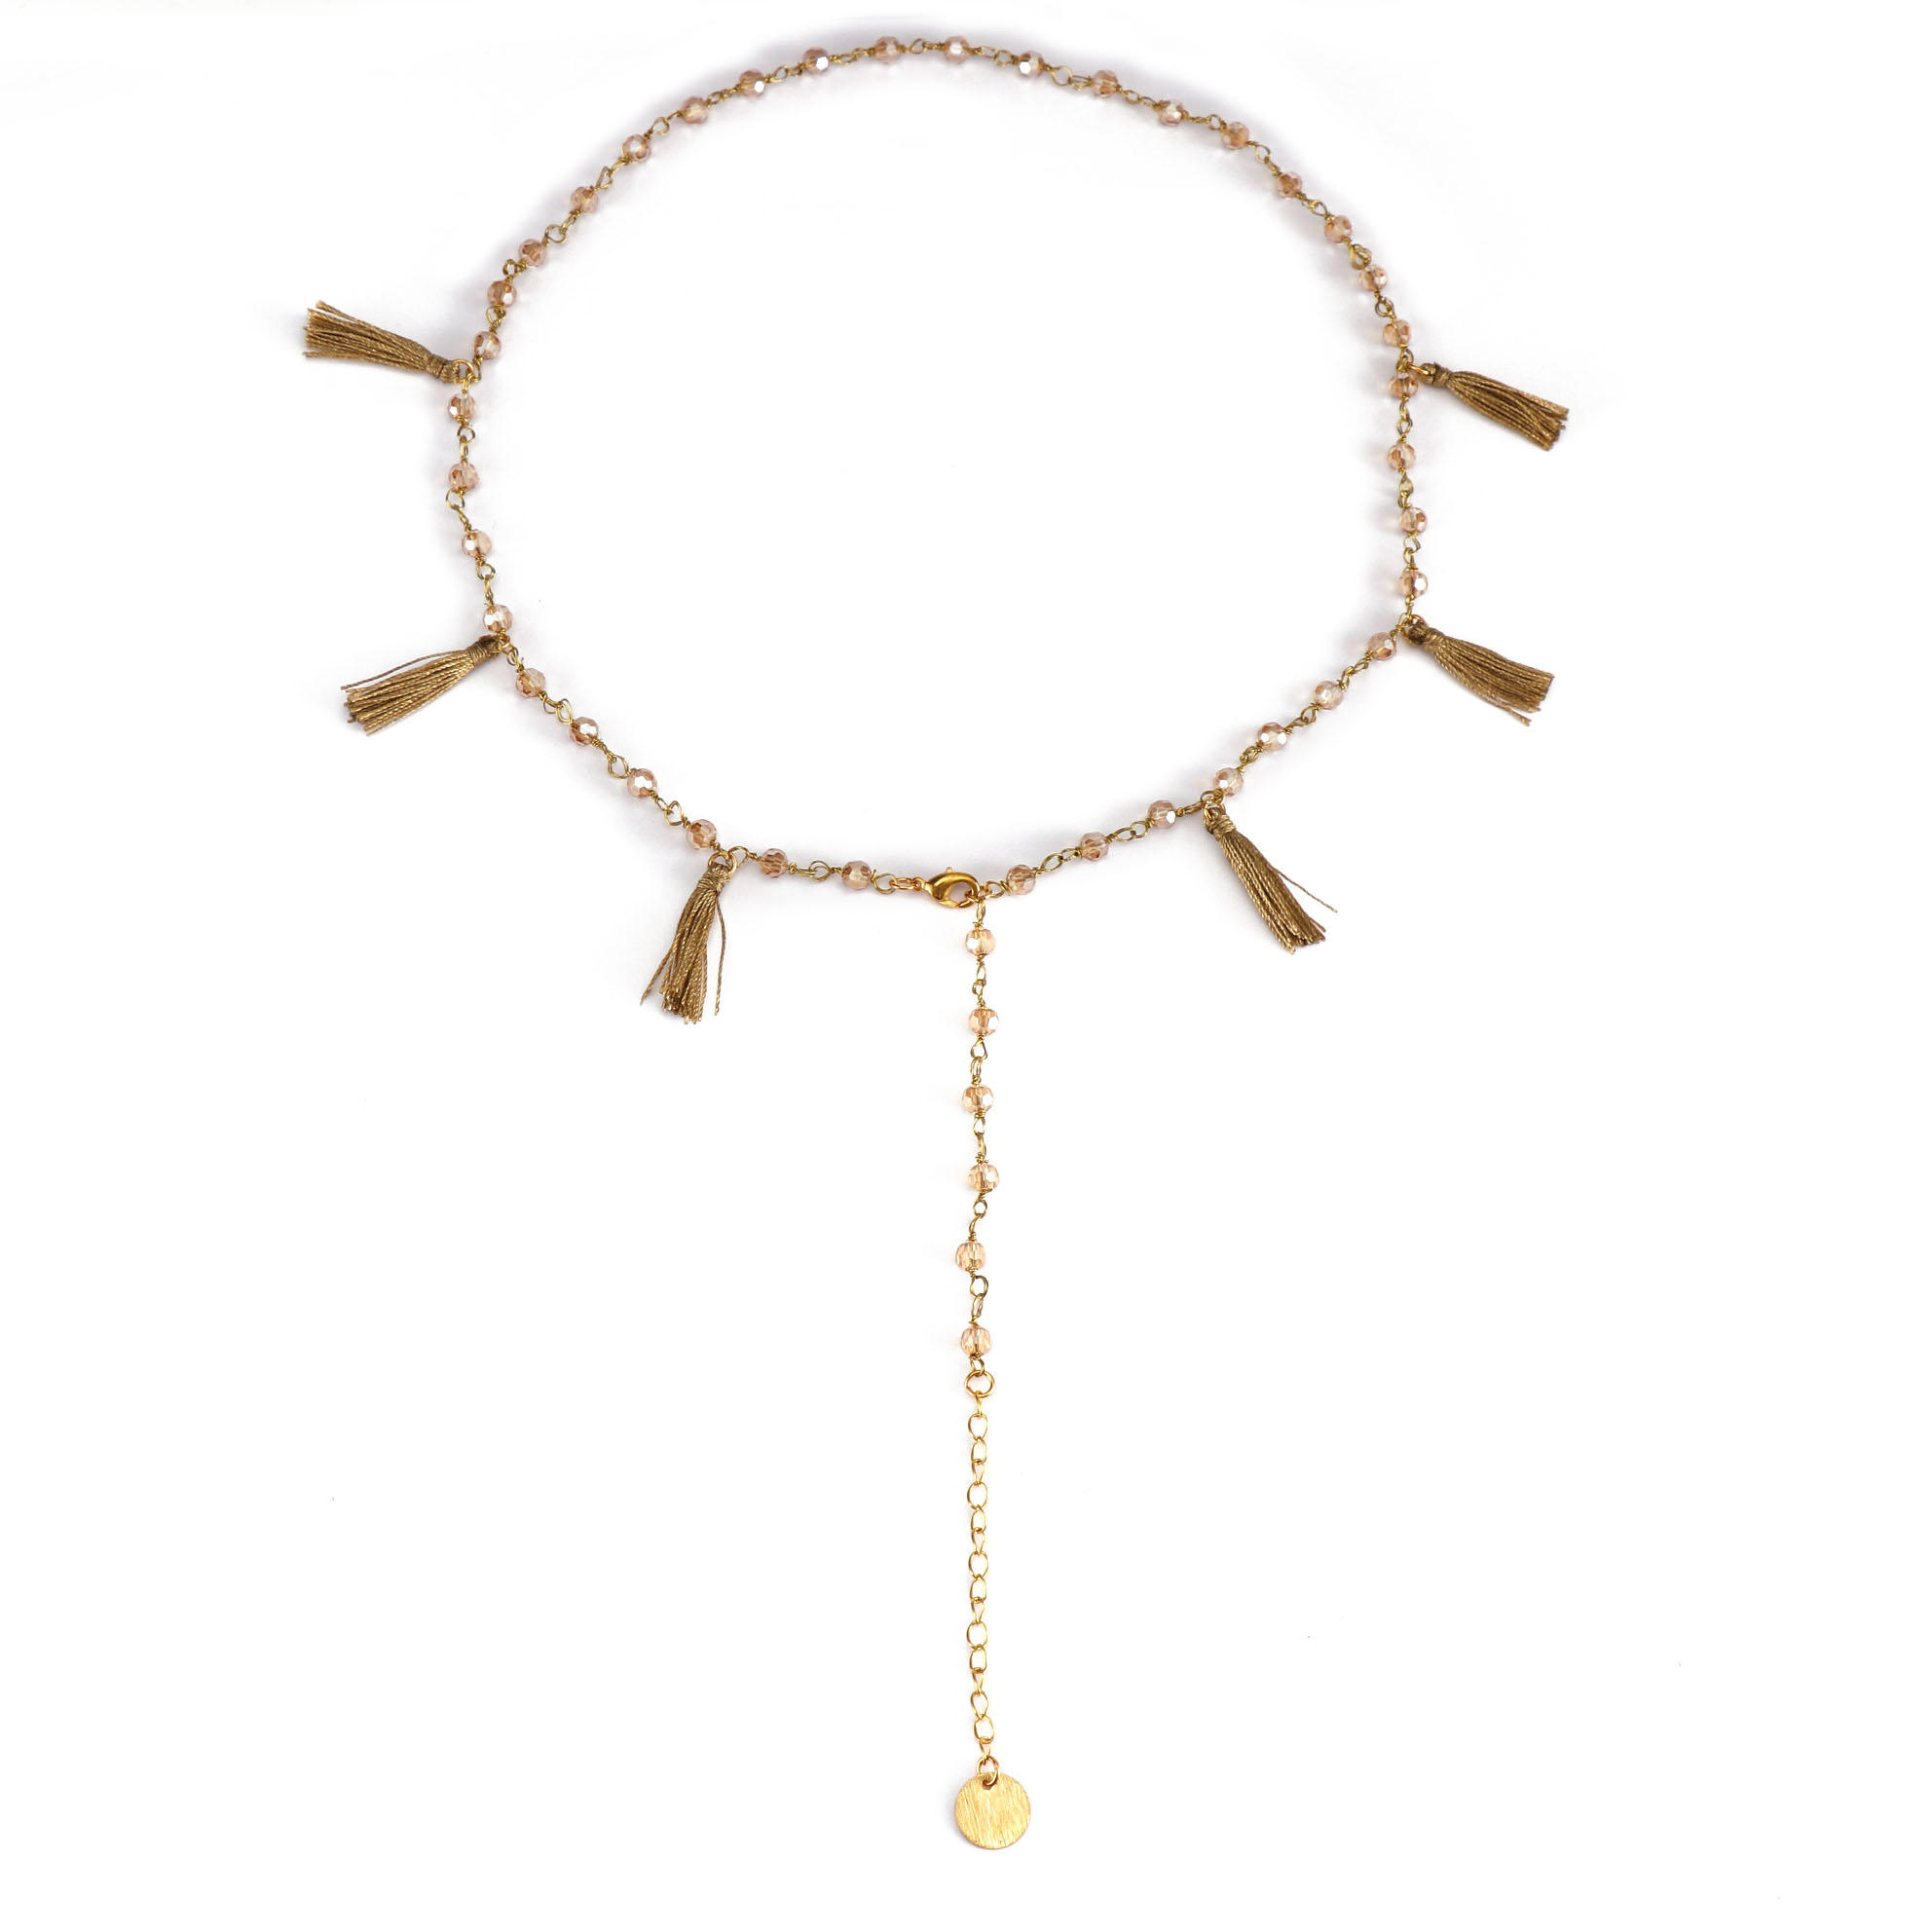 trustworthy crystal choker necklace tassel inquire now for gift-1